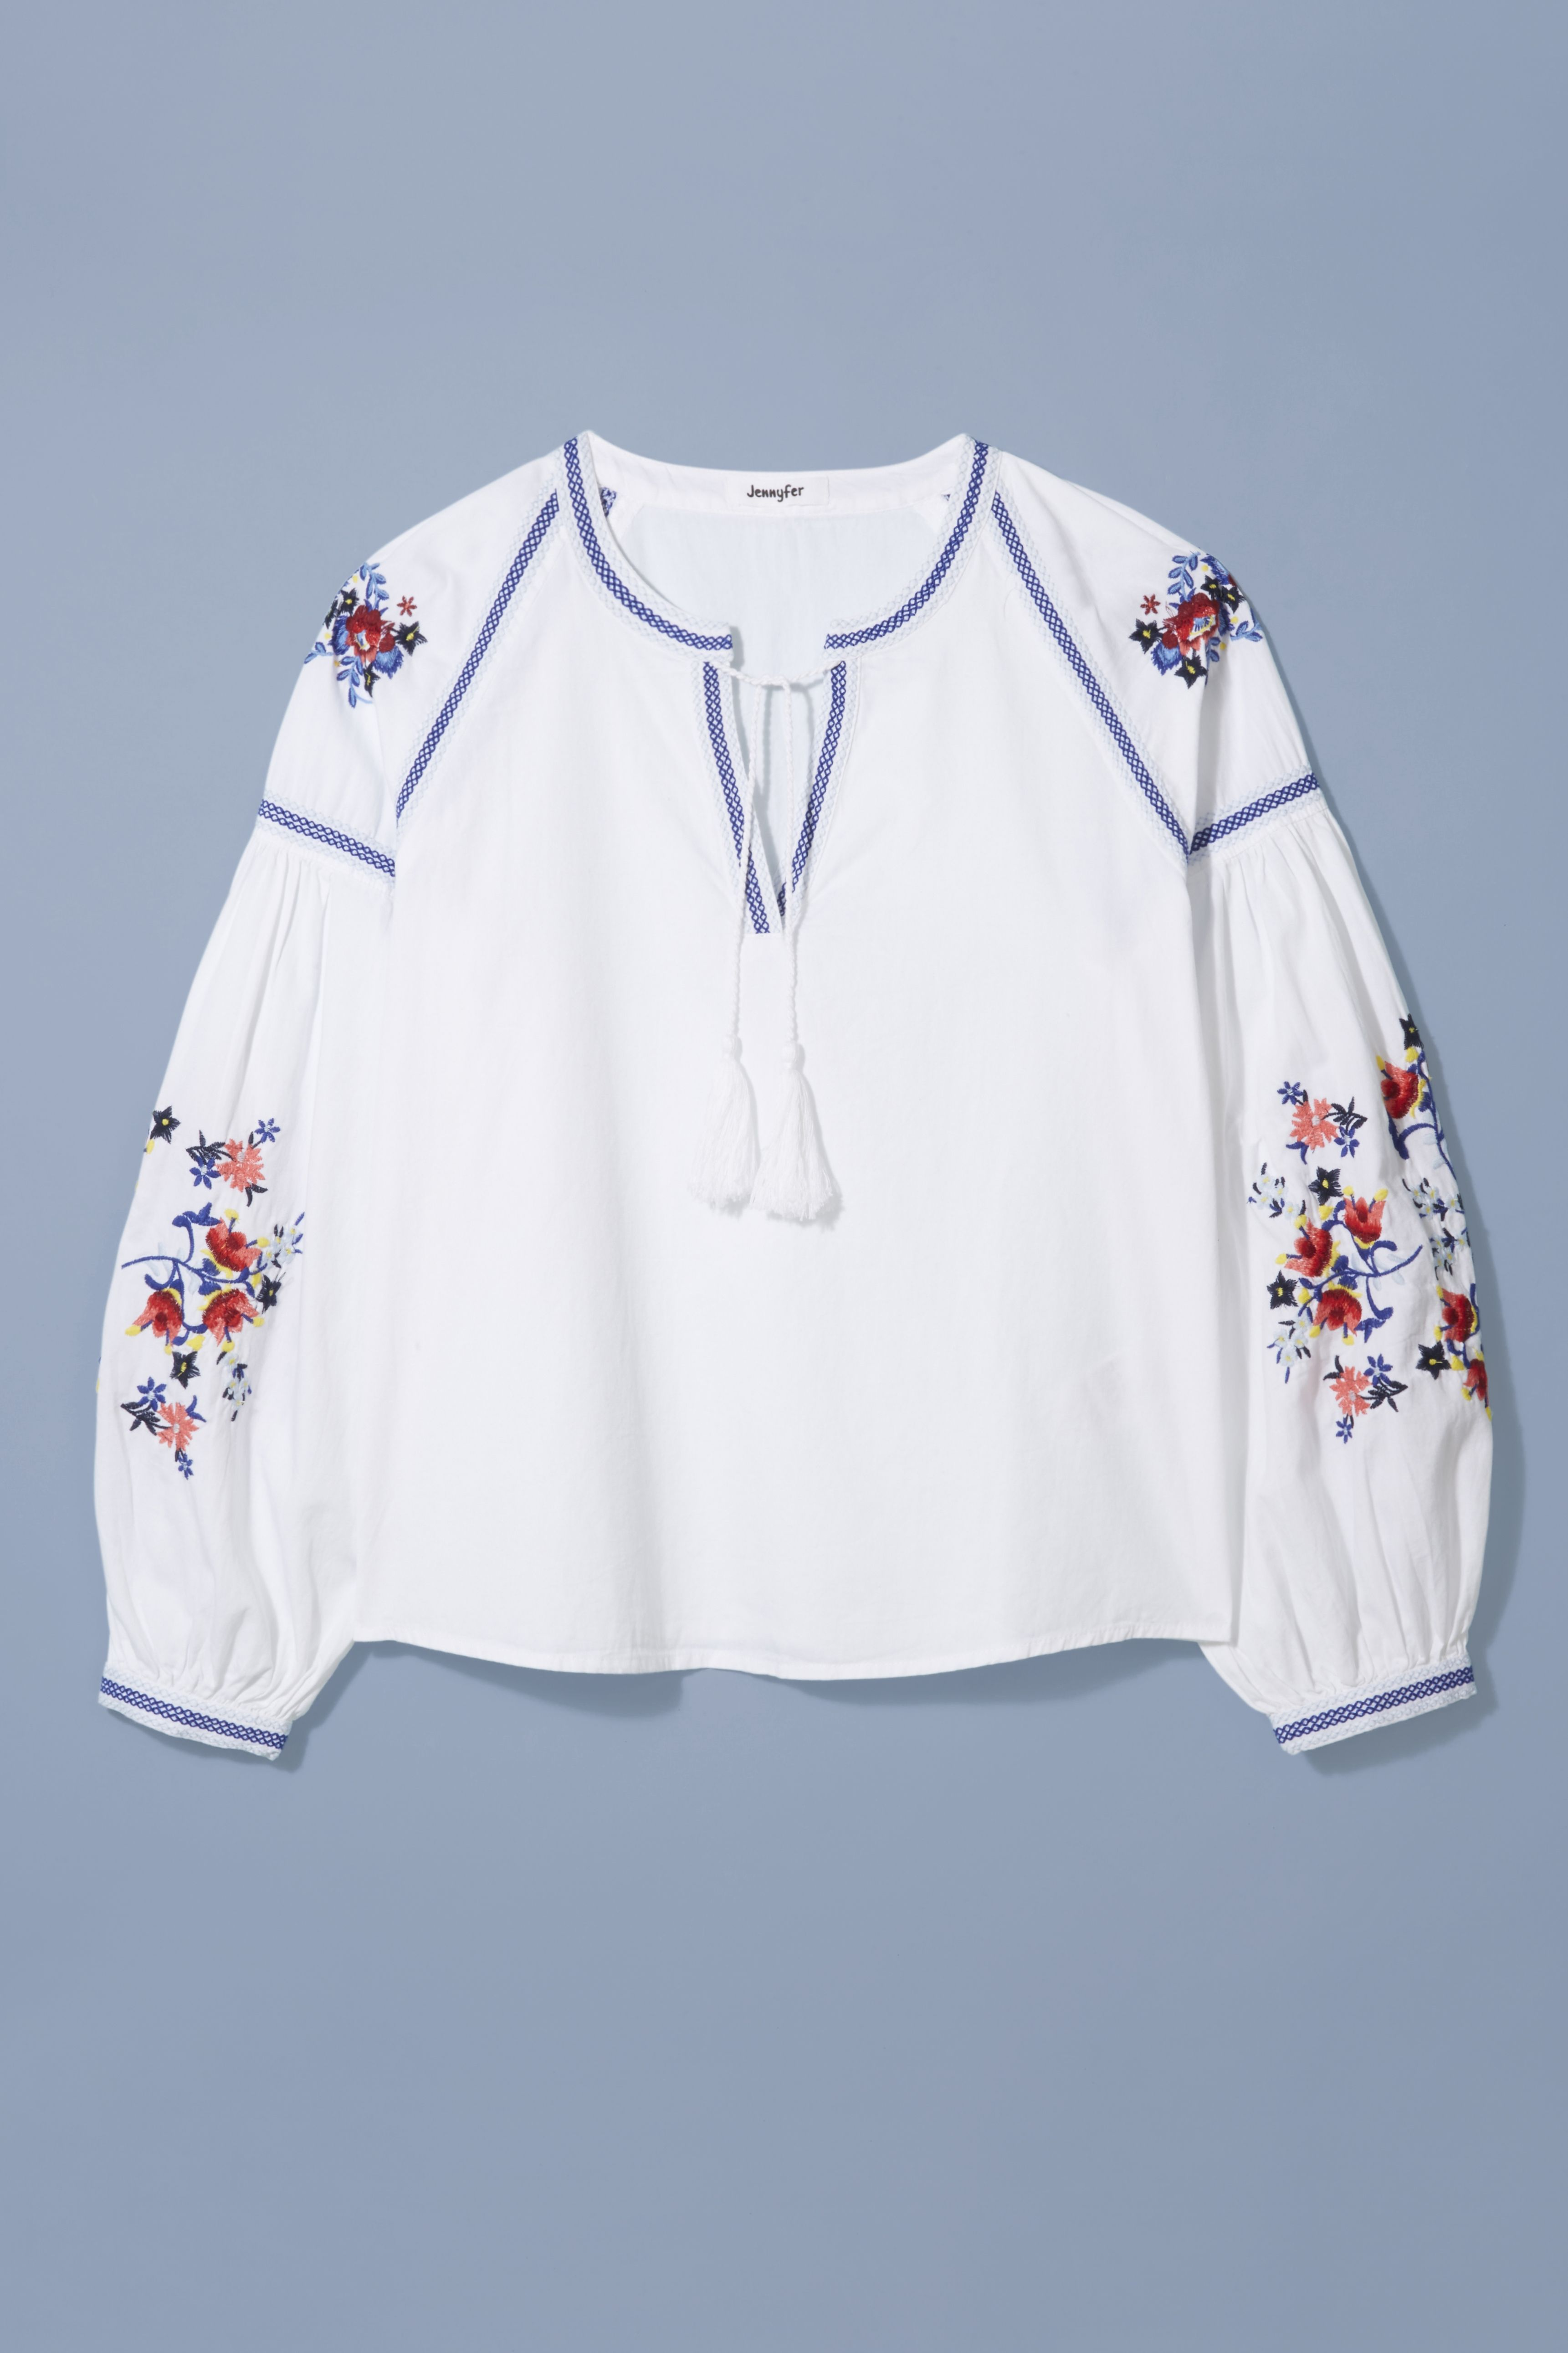 0d53d9420b31 An embroidered bohemian blouse is a summer essential for effortless holiday  style. Add denim shorts and statement sandals to Jennyfer s cool cover-up  for a ...